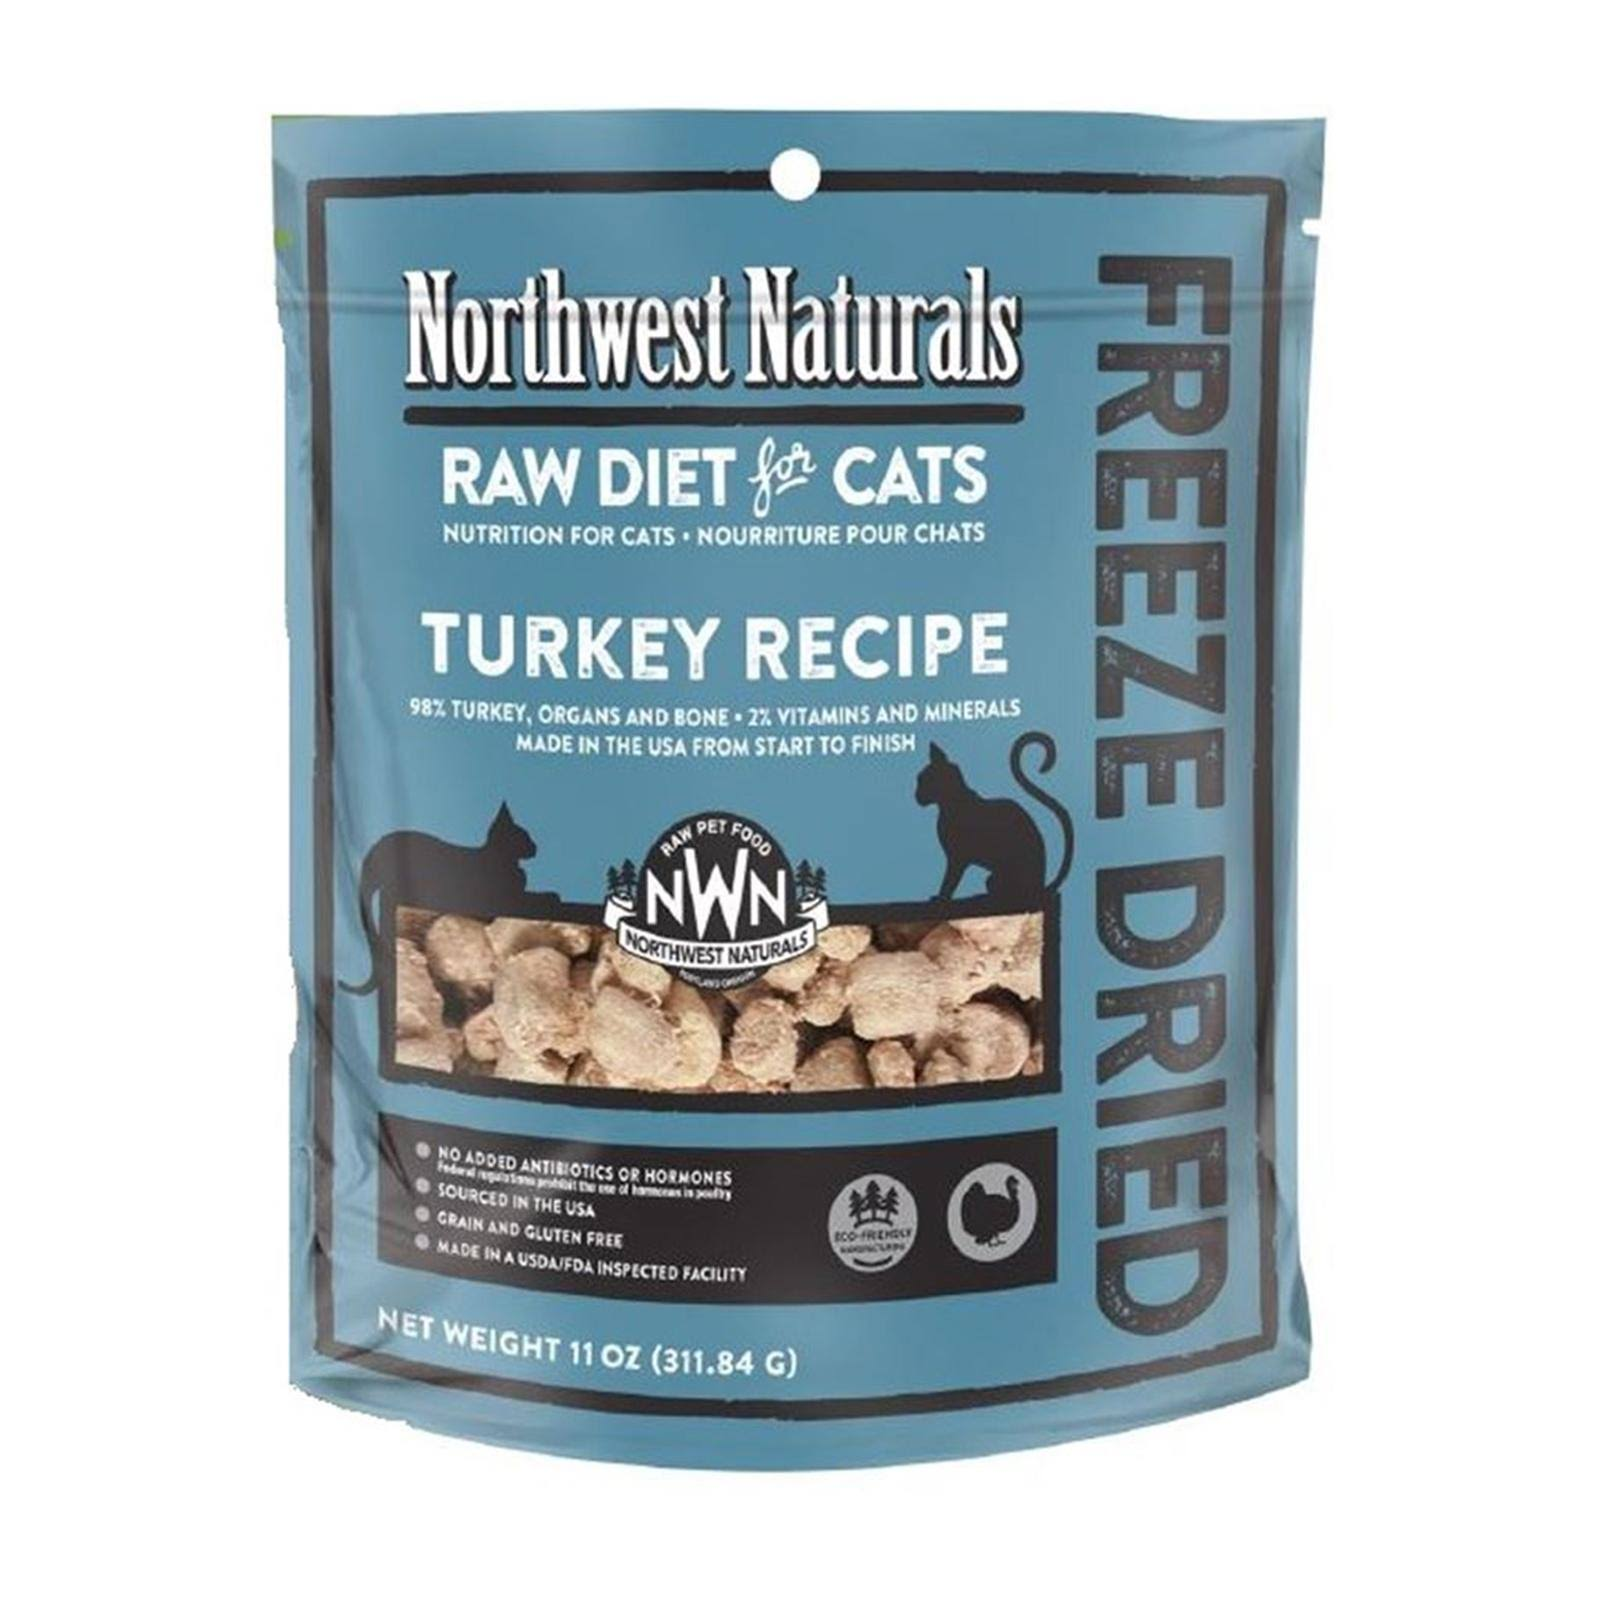 Northwest Naturals Freeze Dried Raw Diet For Cats - Turkey Recipe